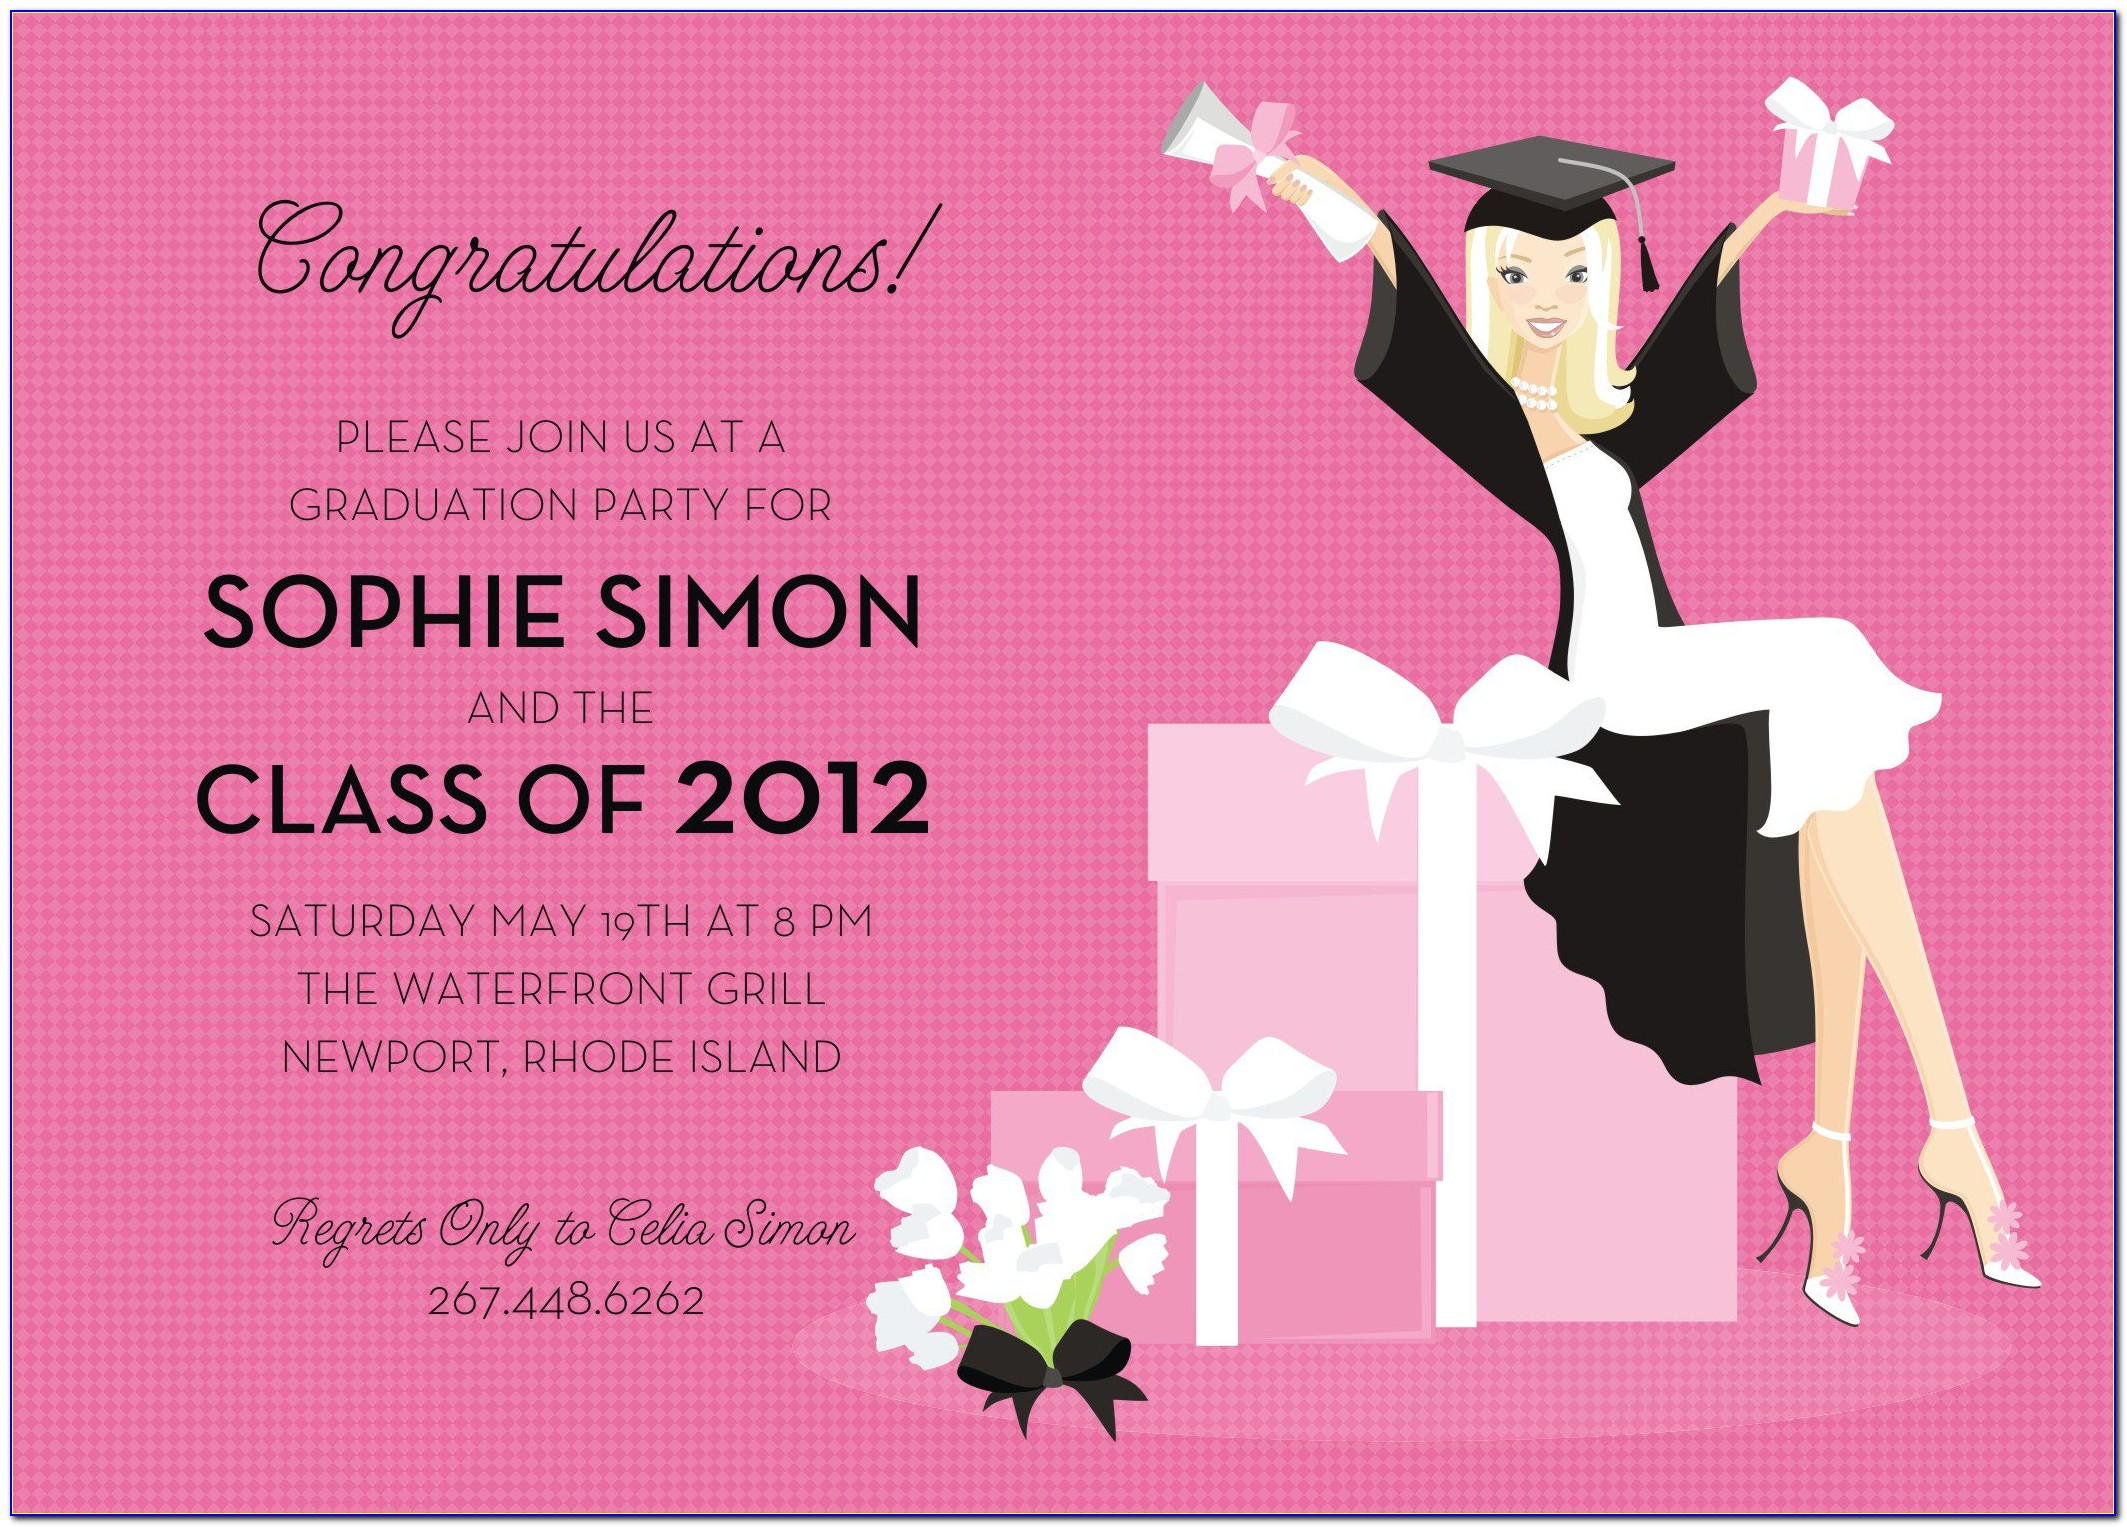 Graduation Party Invitation Template Download